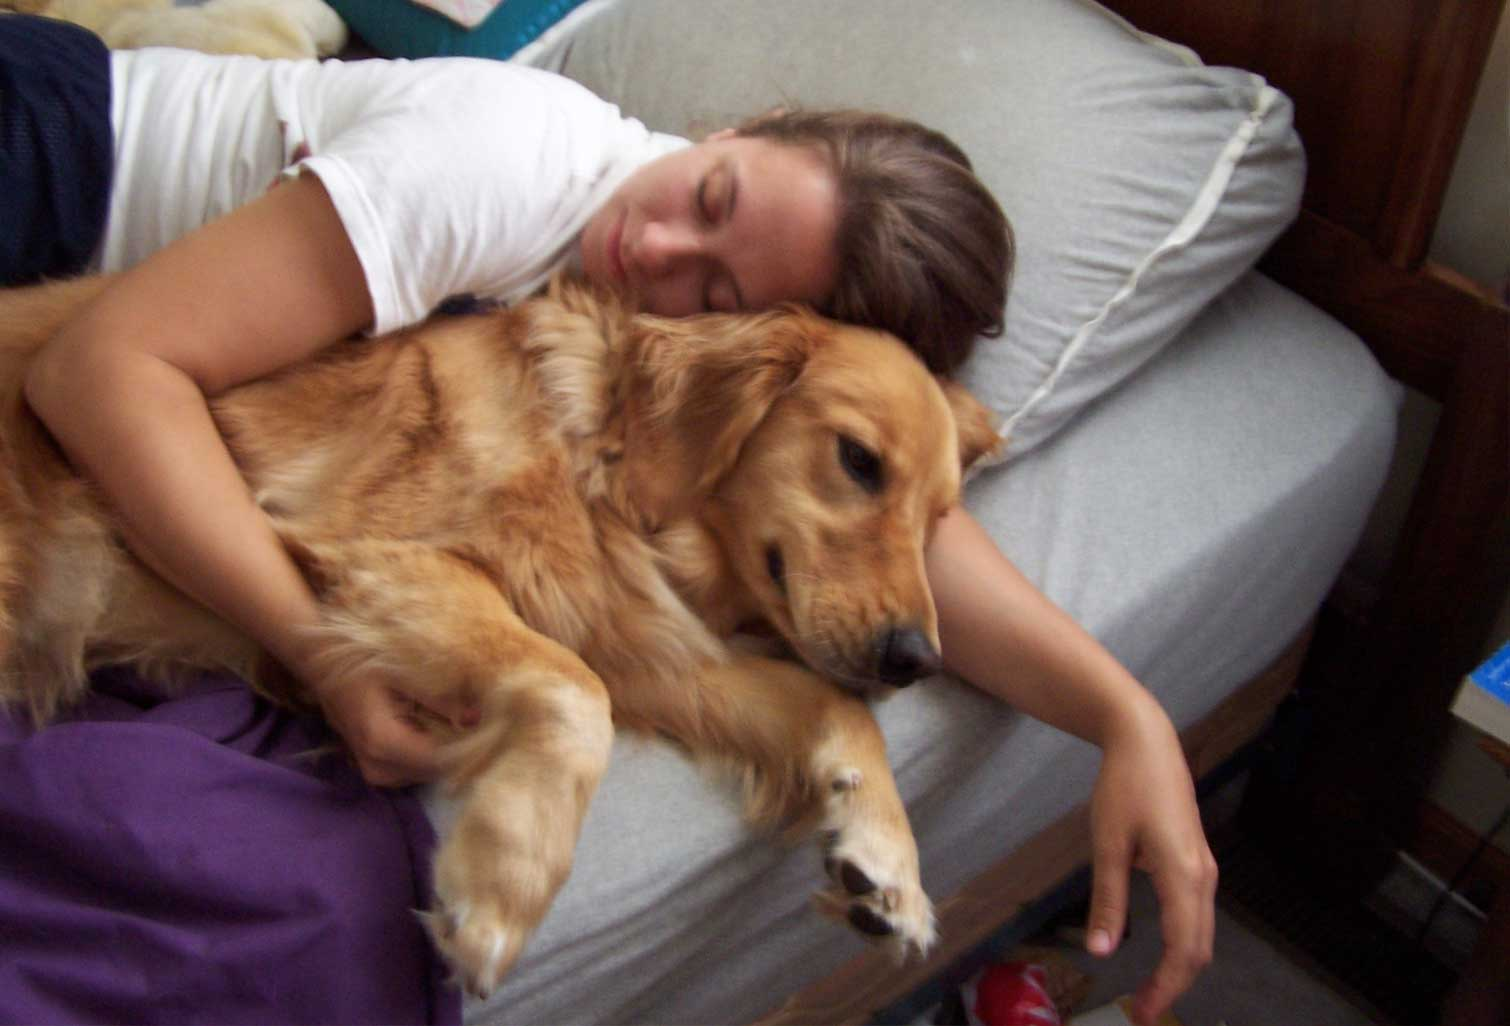 cuddling with ginger the golden retriever